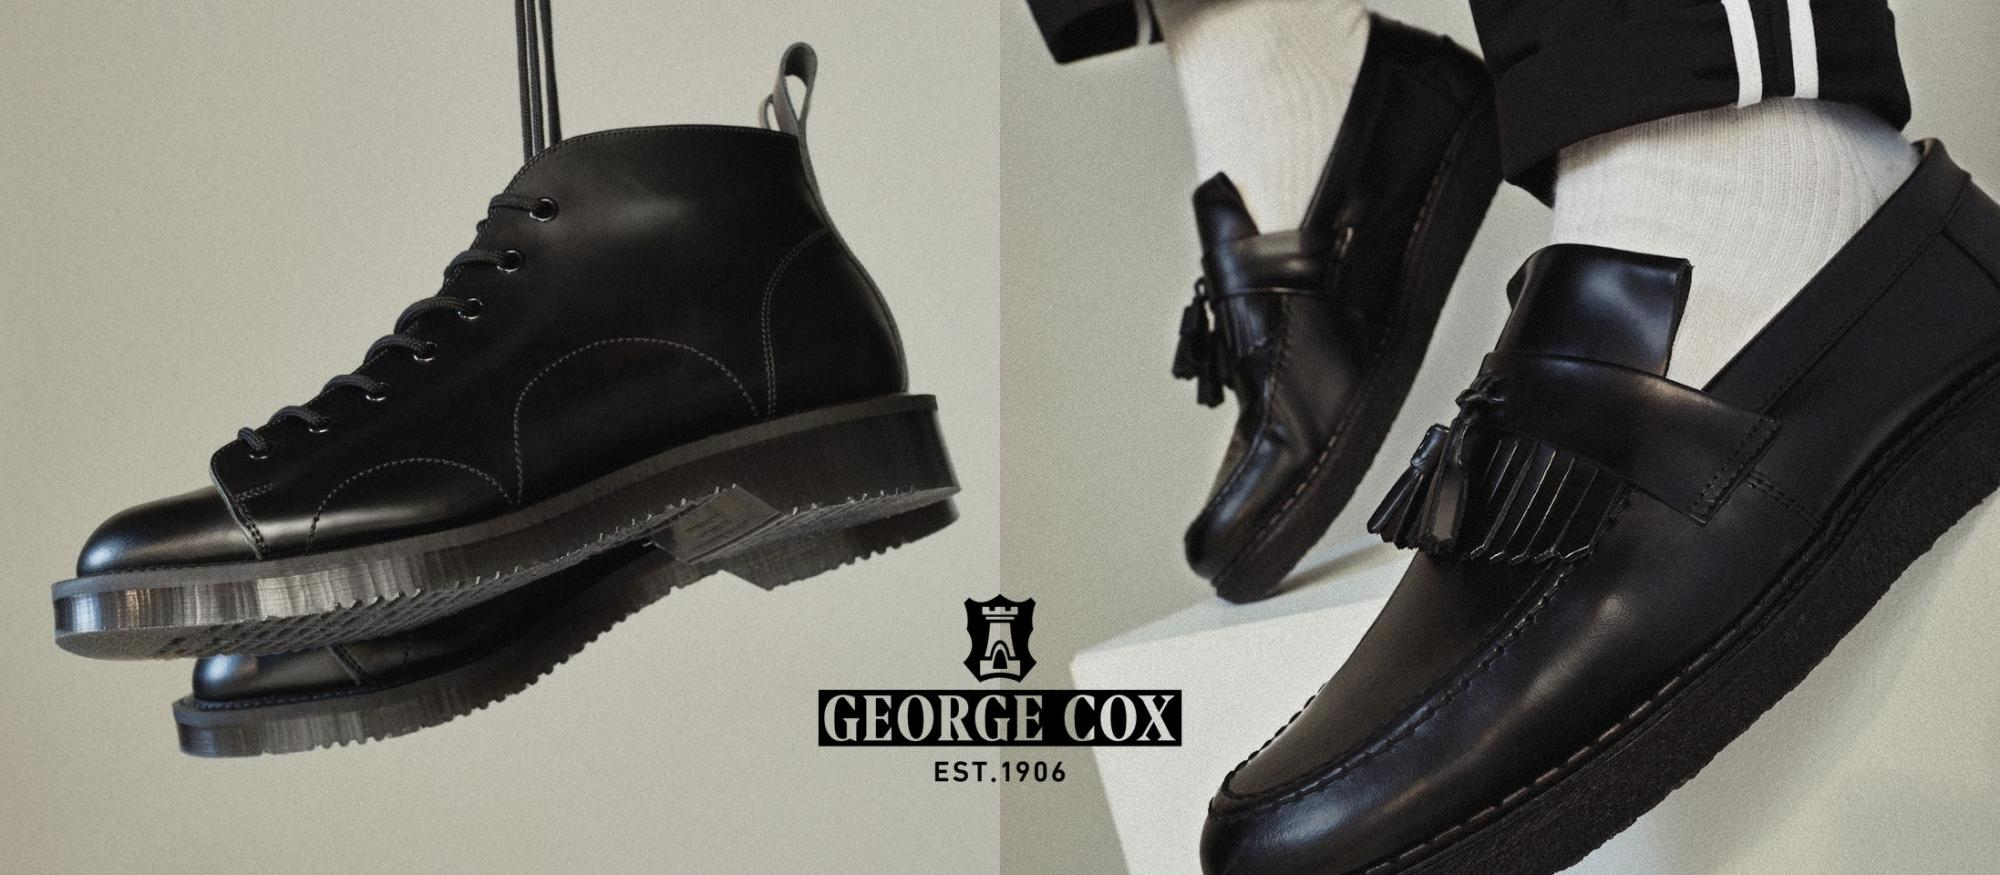 George cox Fred Perry banner